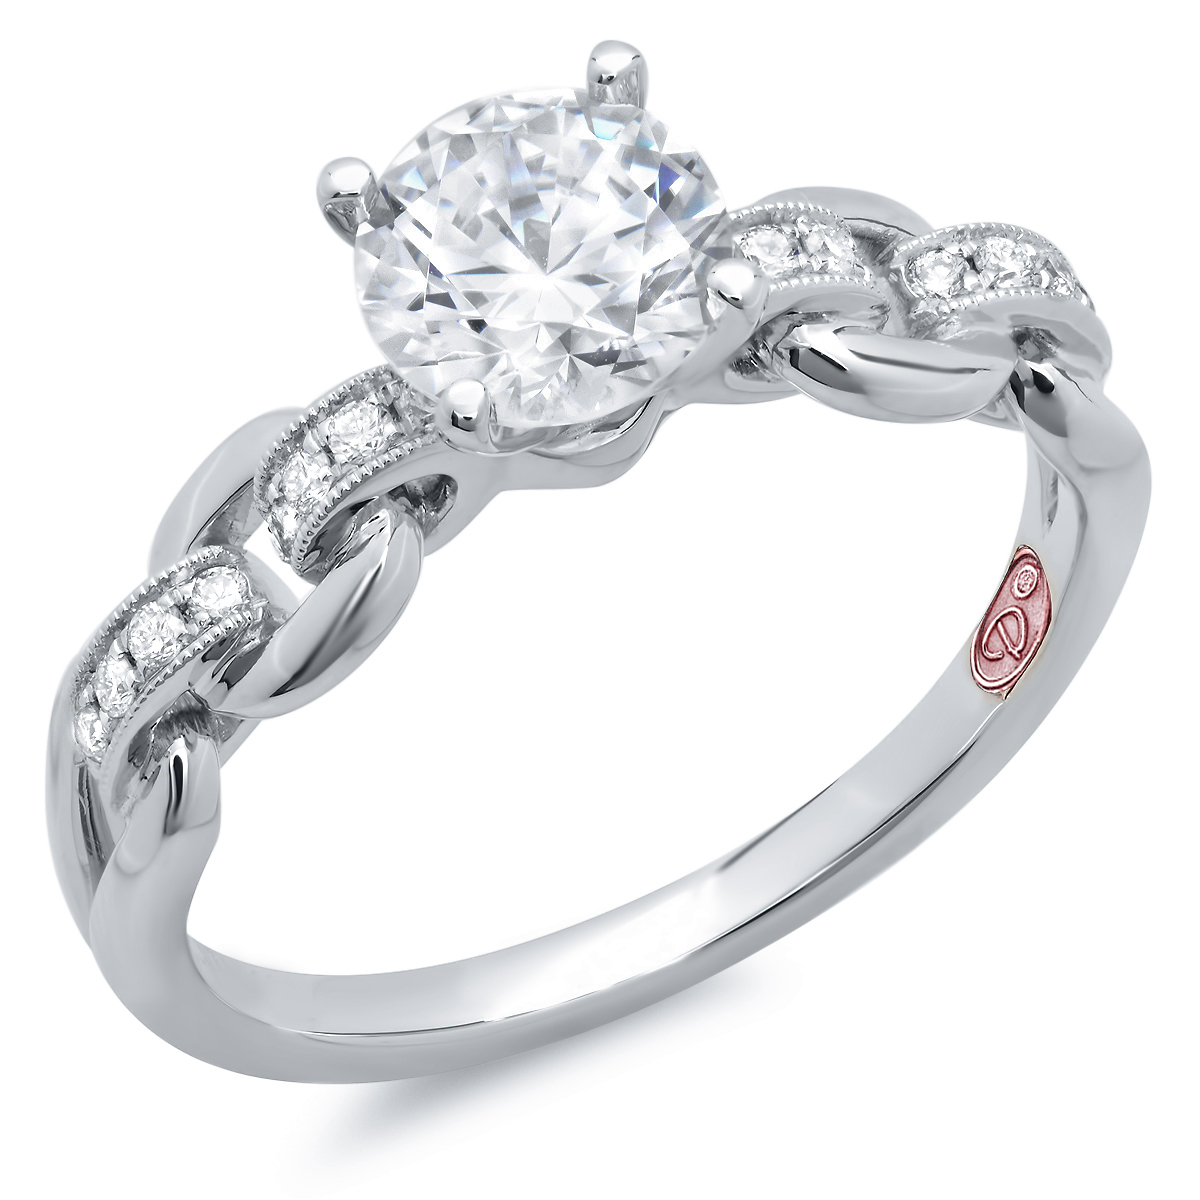 rings photos image beautiful pictures engagement and diamond images ring for